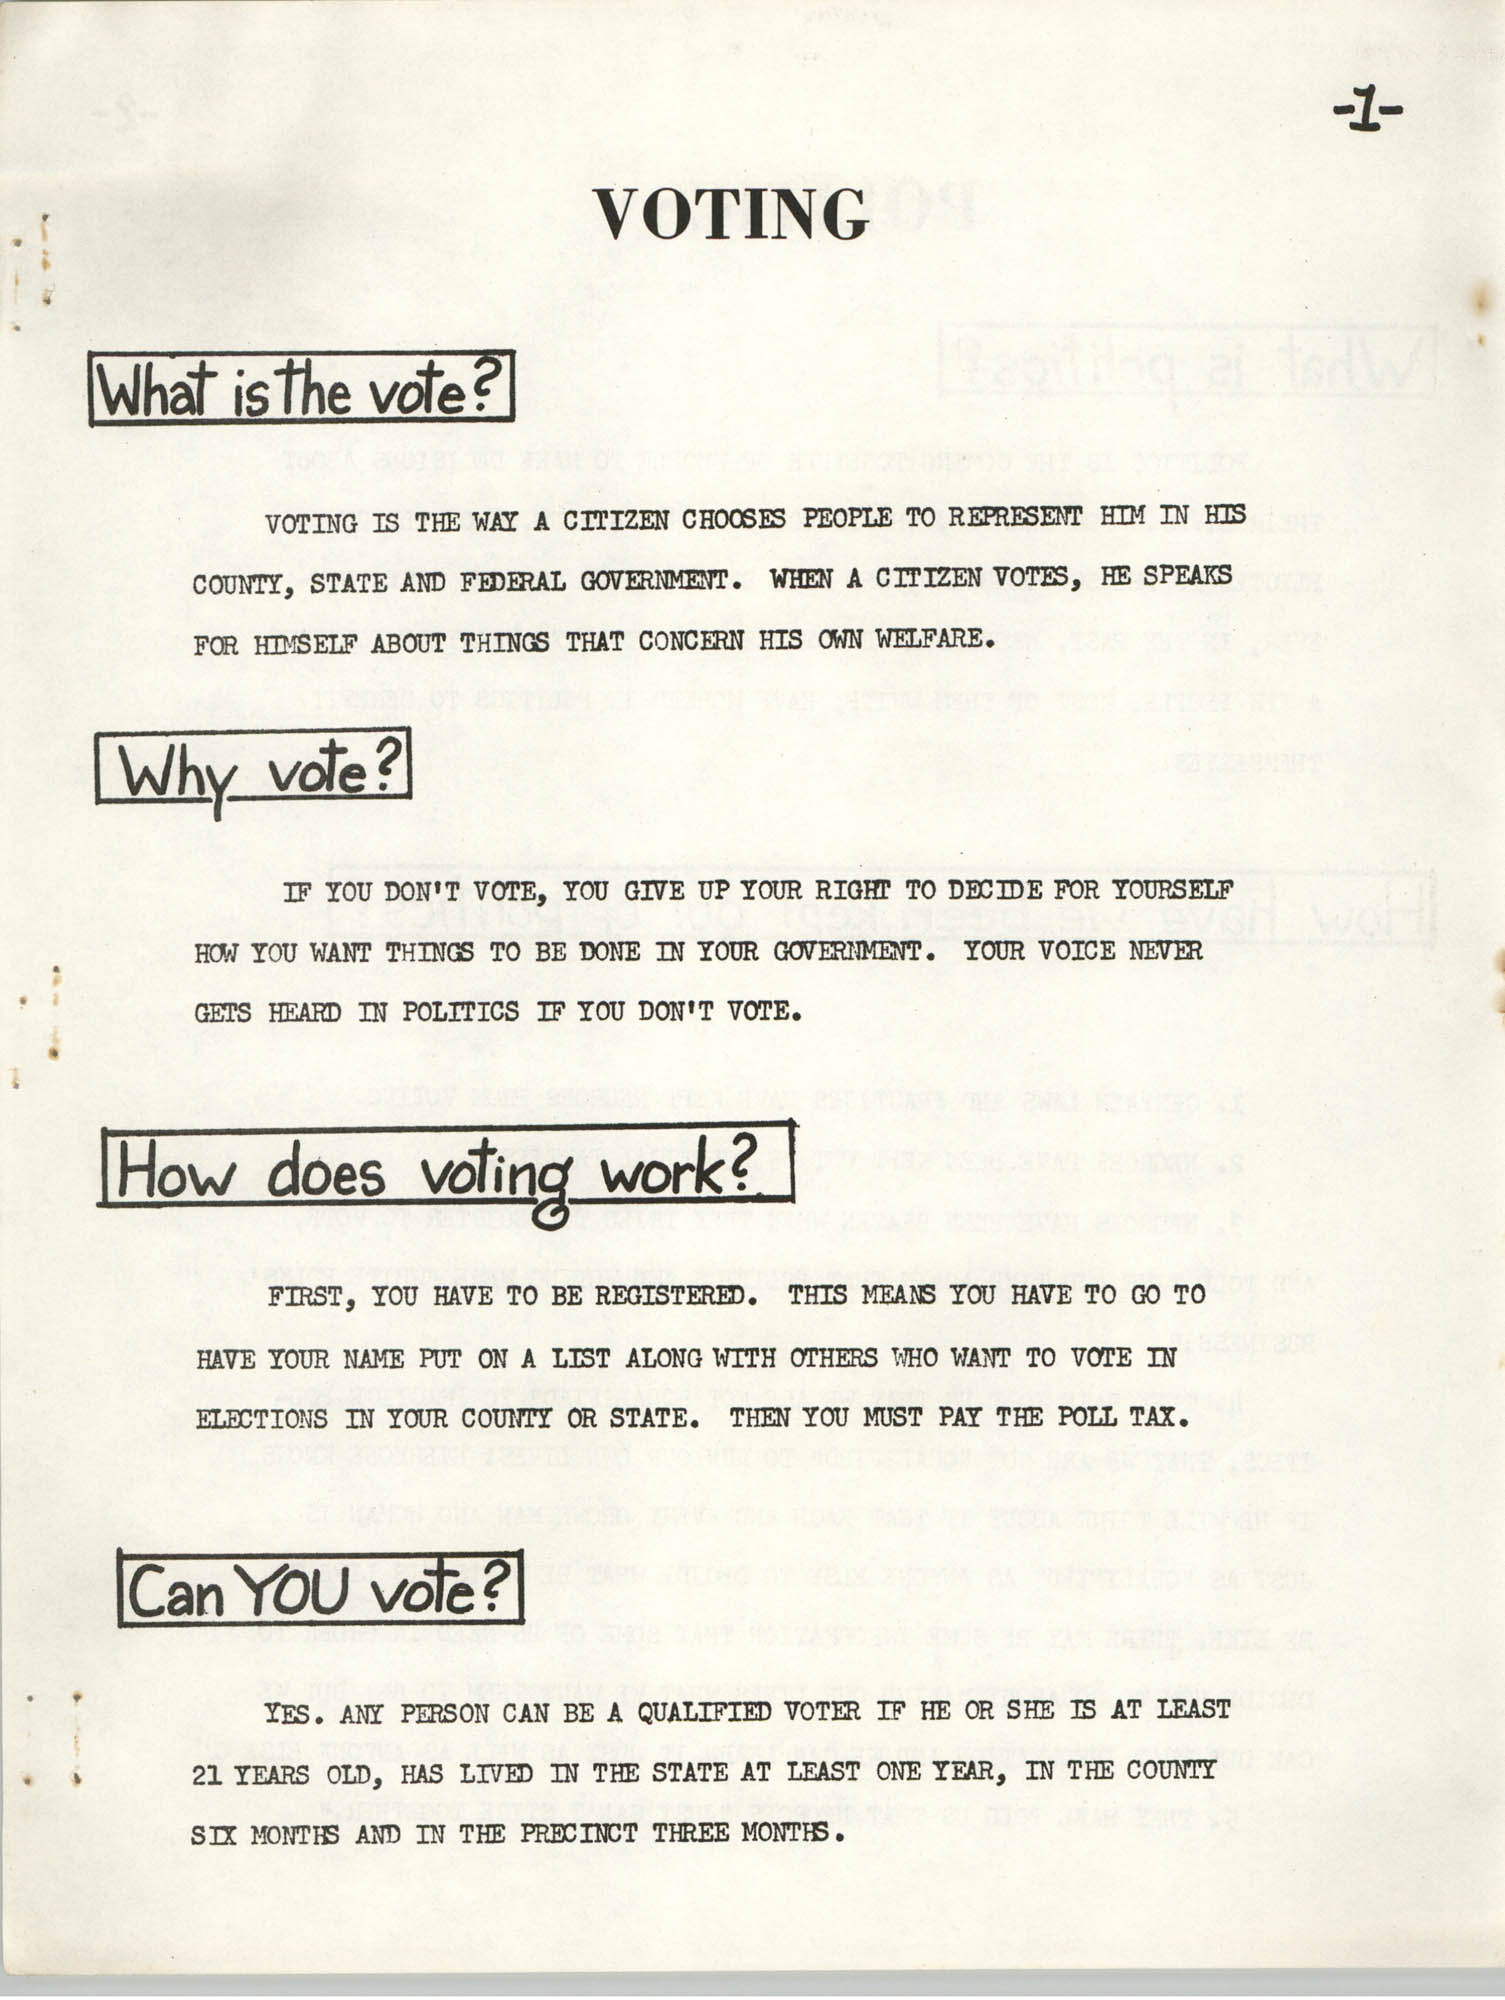 Lowndes County Freedom Organization Voting Pamphlet, Page 3